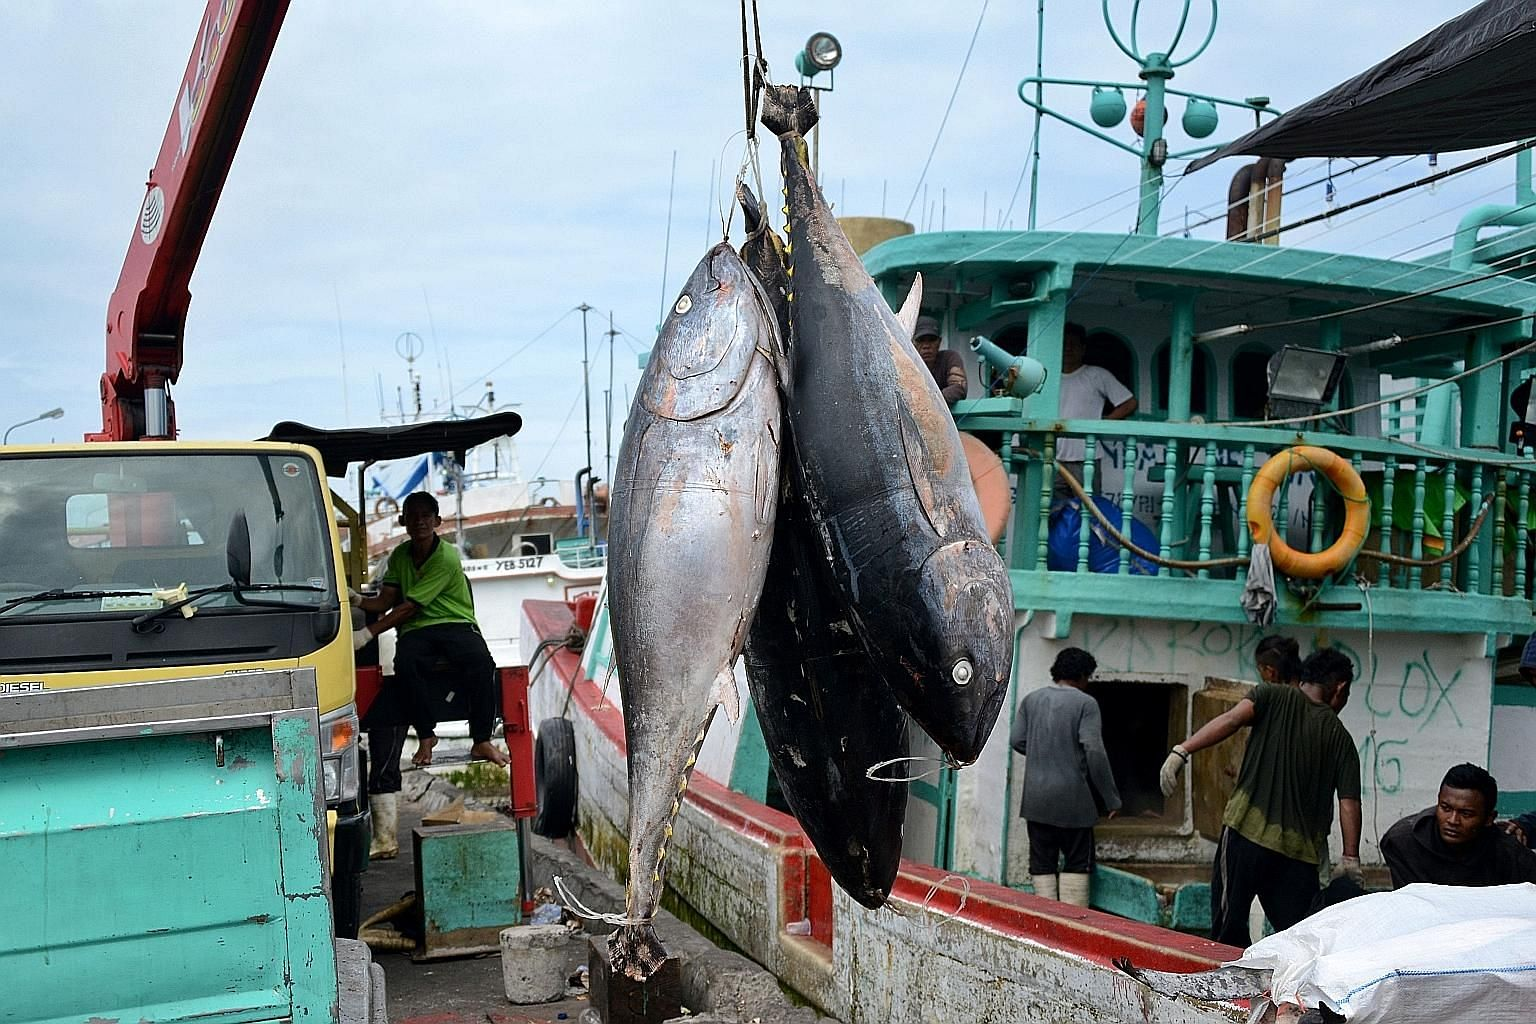 Fishermen in Bali unloading their tuna catch. Fishing on the high seas, often with generous government subsidies, is a multibillion-dollar industry, particularly for high-value fish served in restaurants.